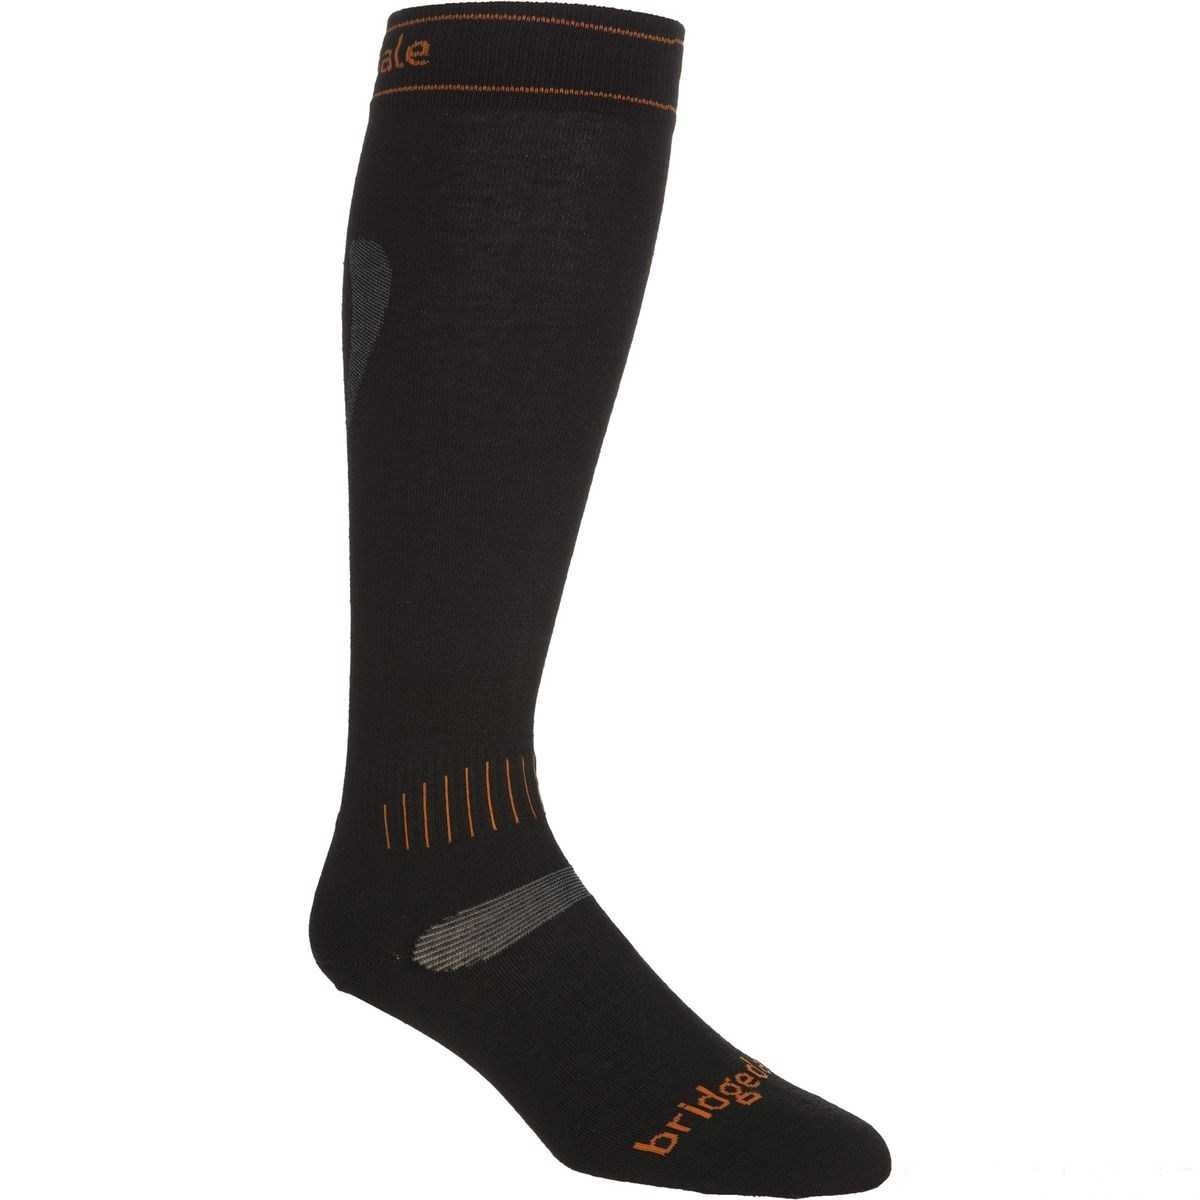 Bridgedale Ski Race Socks - Black